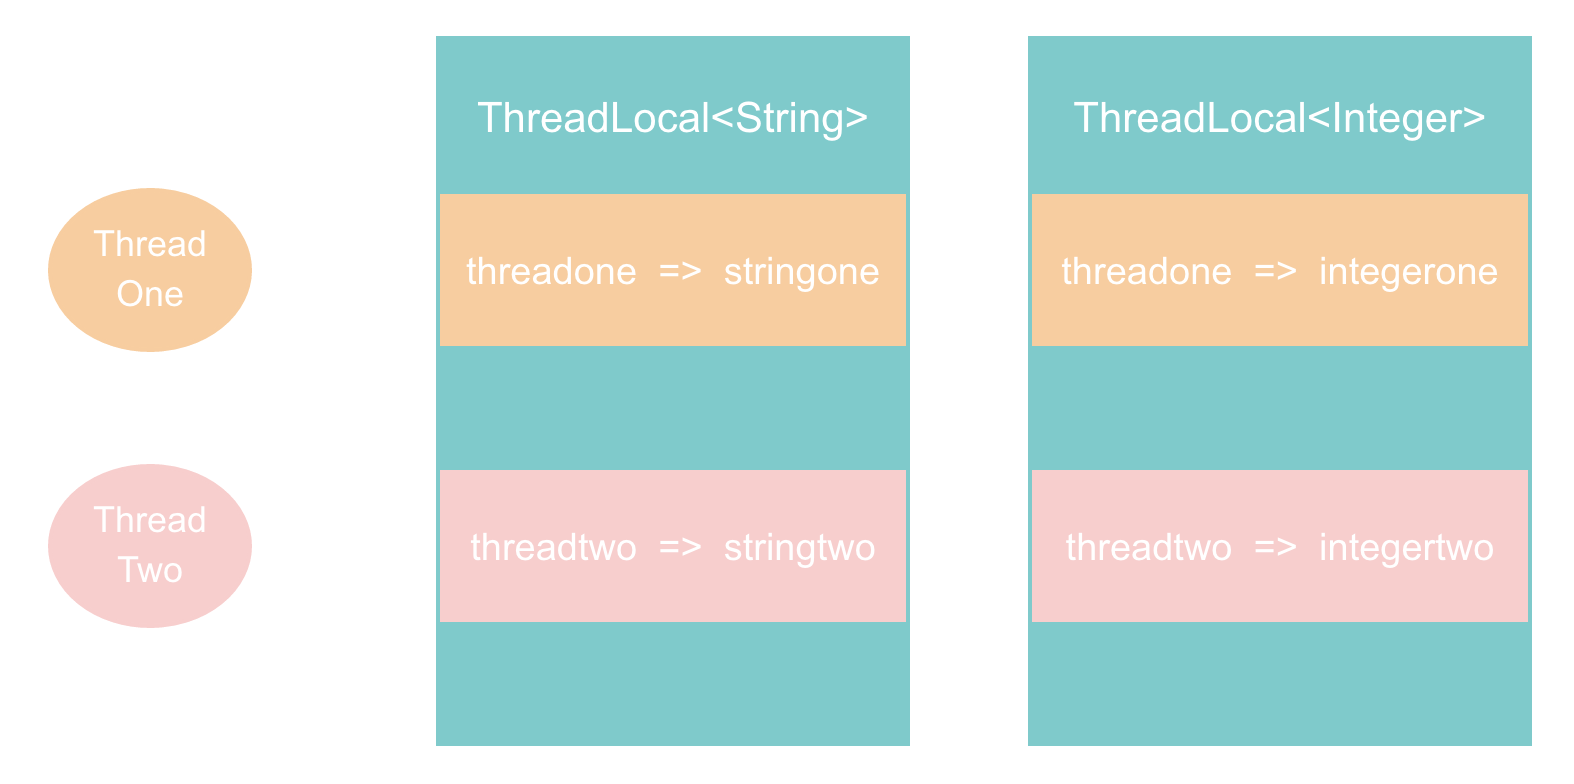 threadlocal-one.png